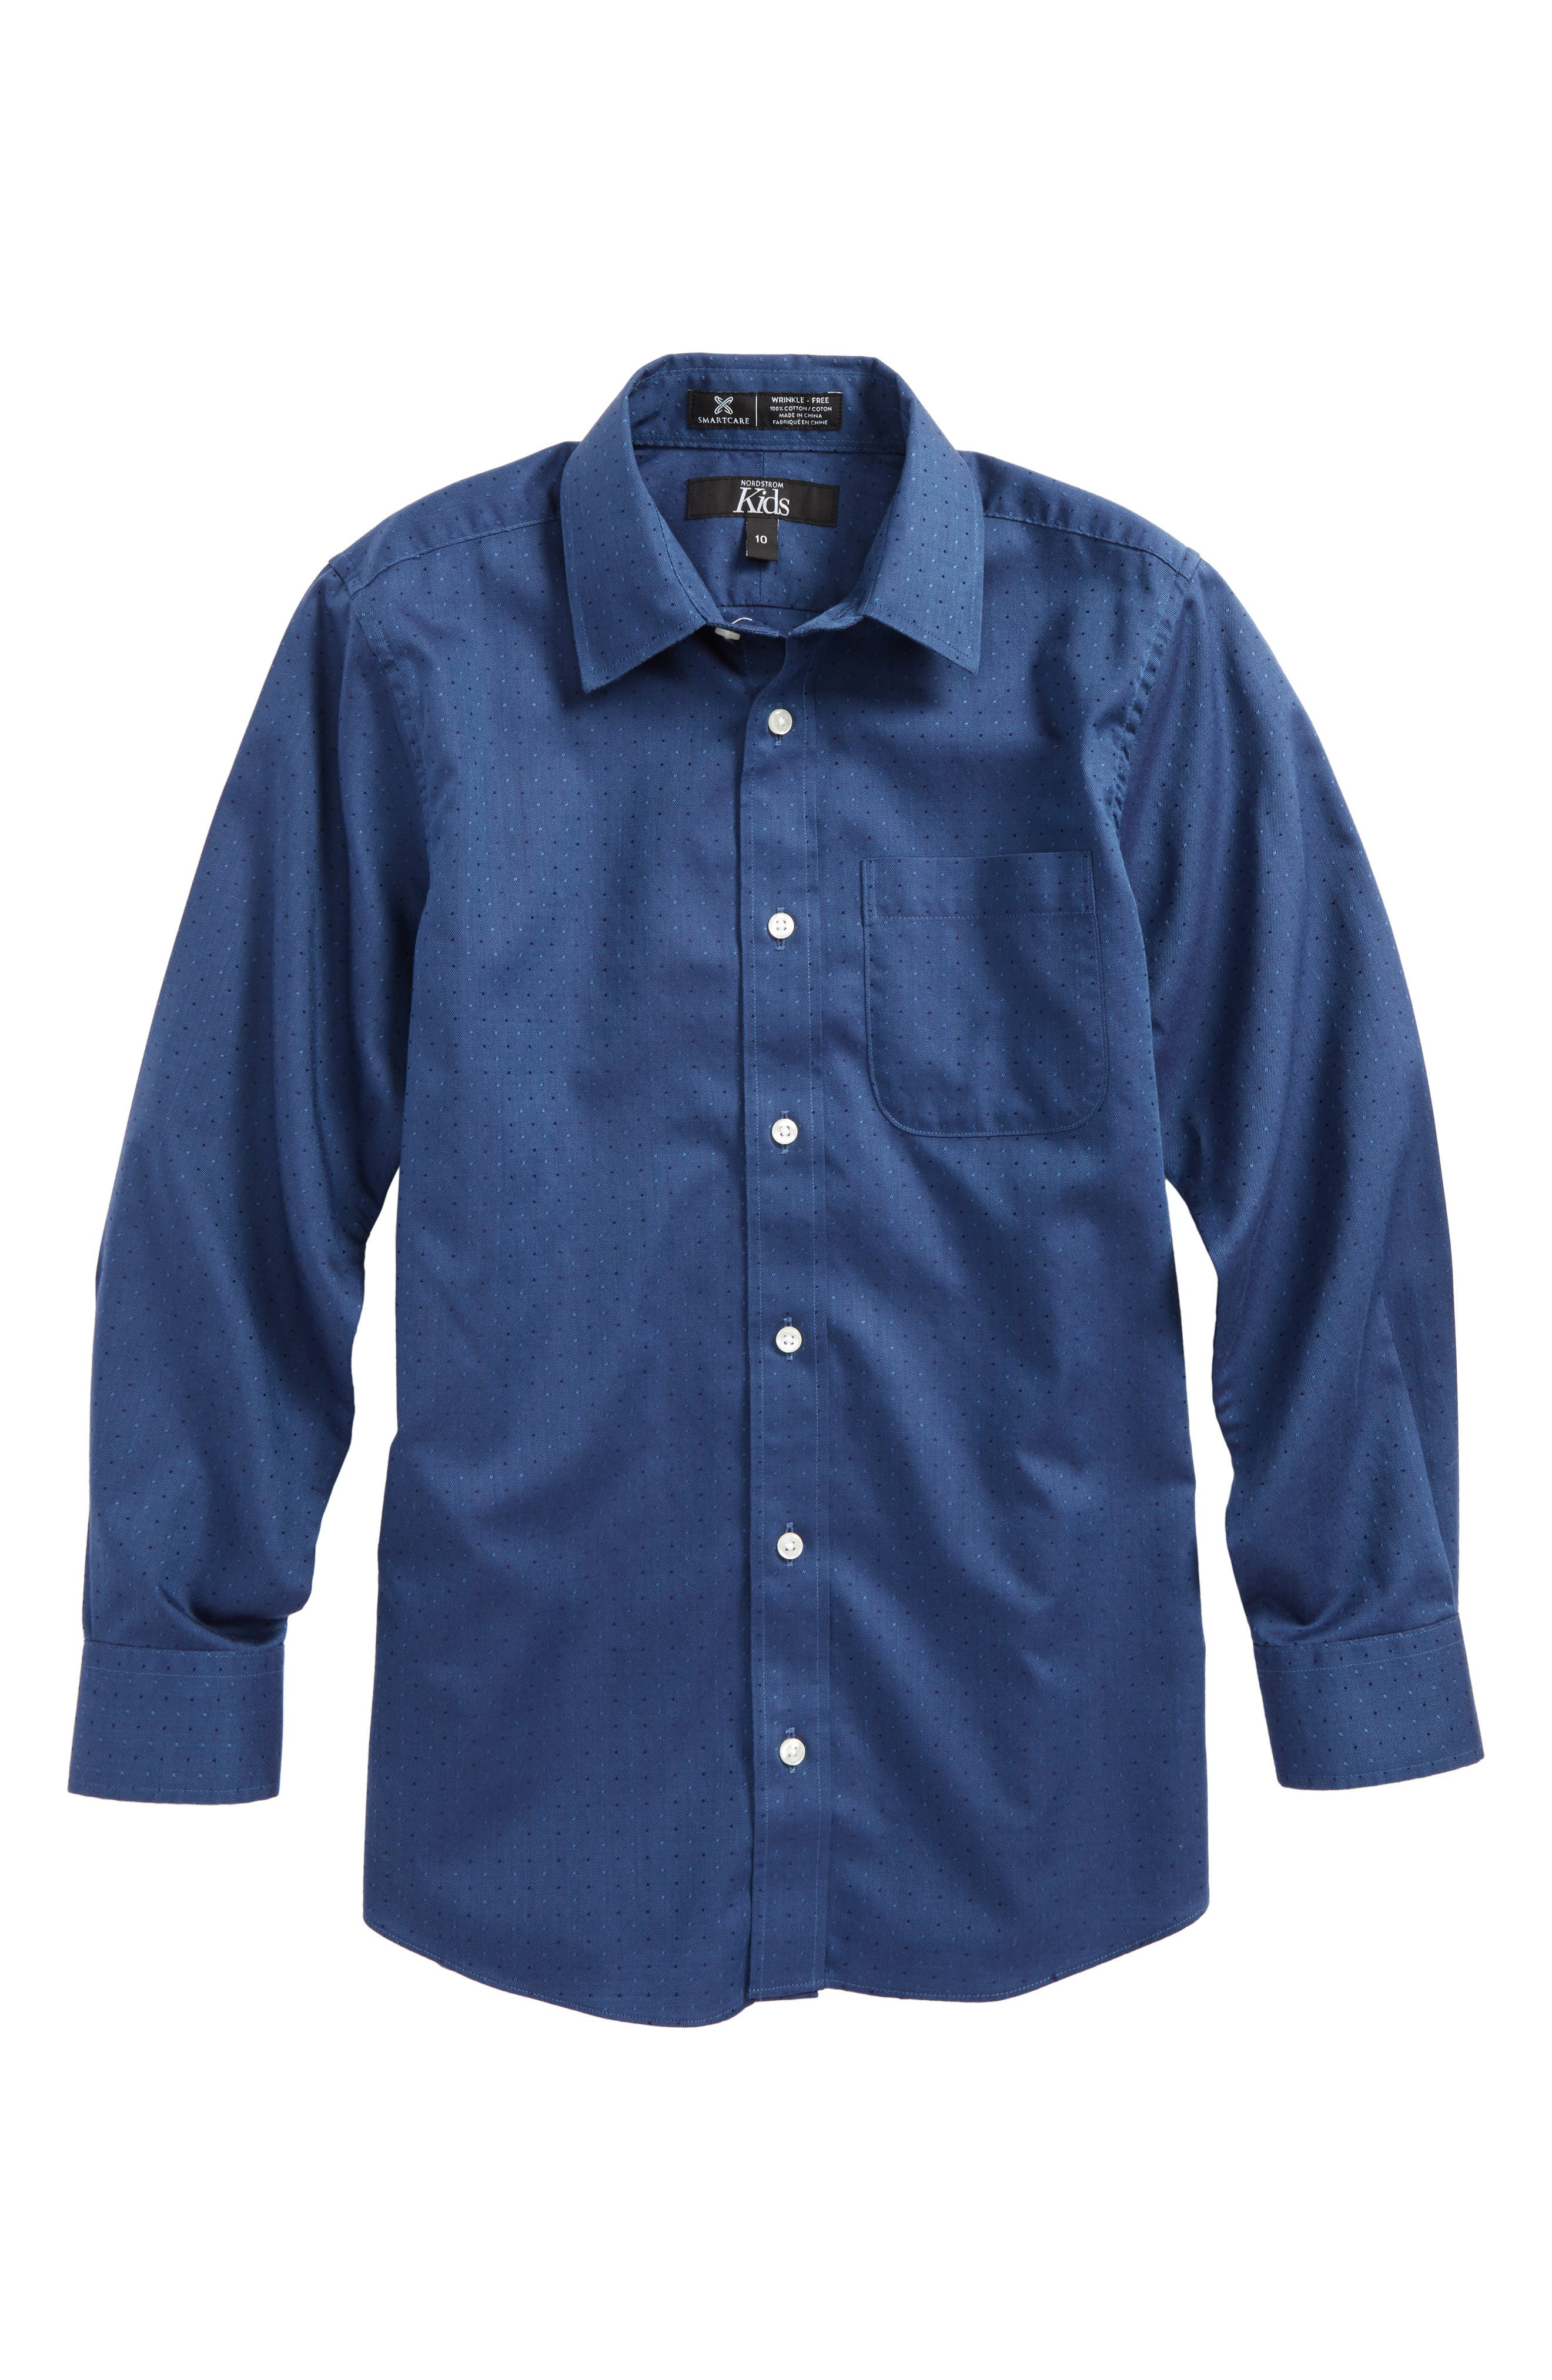 Dot Jacquard Sport Shirt,                             Main thumbnail 1, color,                             Navy Denim Neat Dot